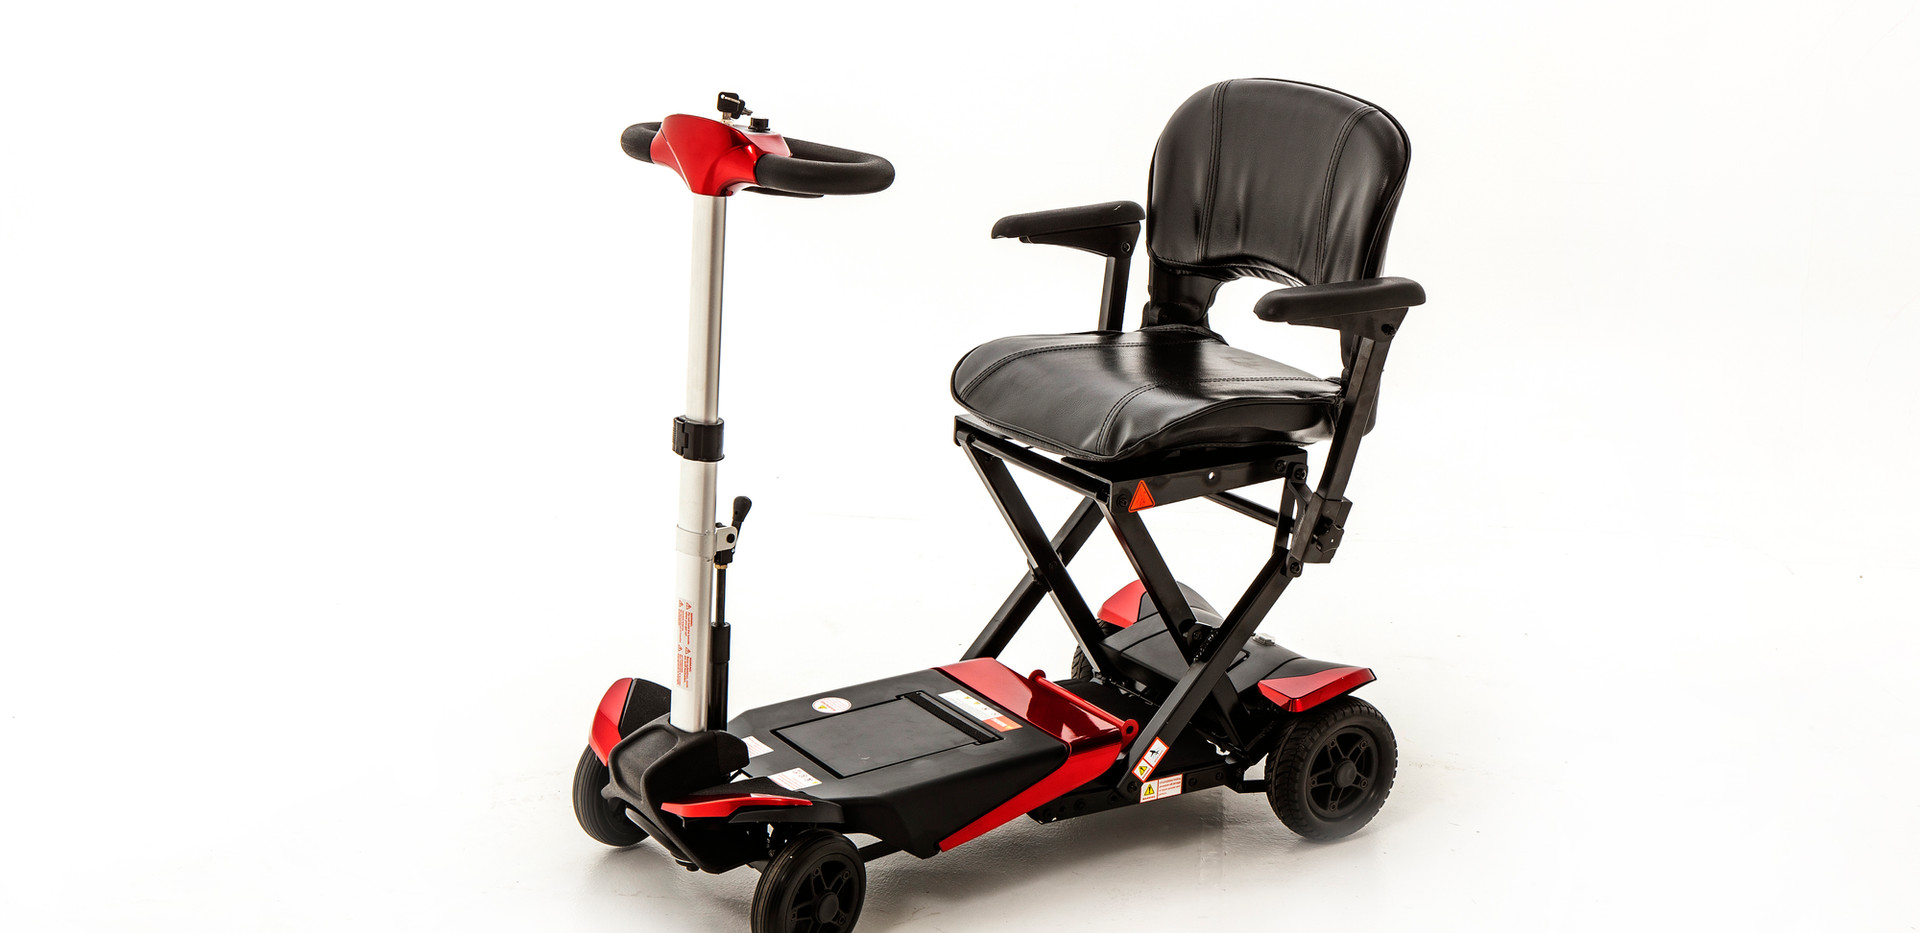 Monarch Smarti mobility scooter in red